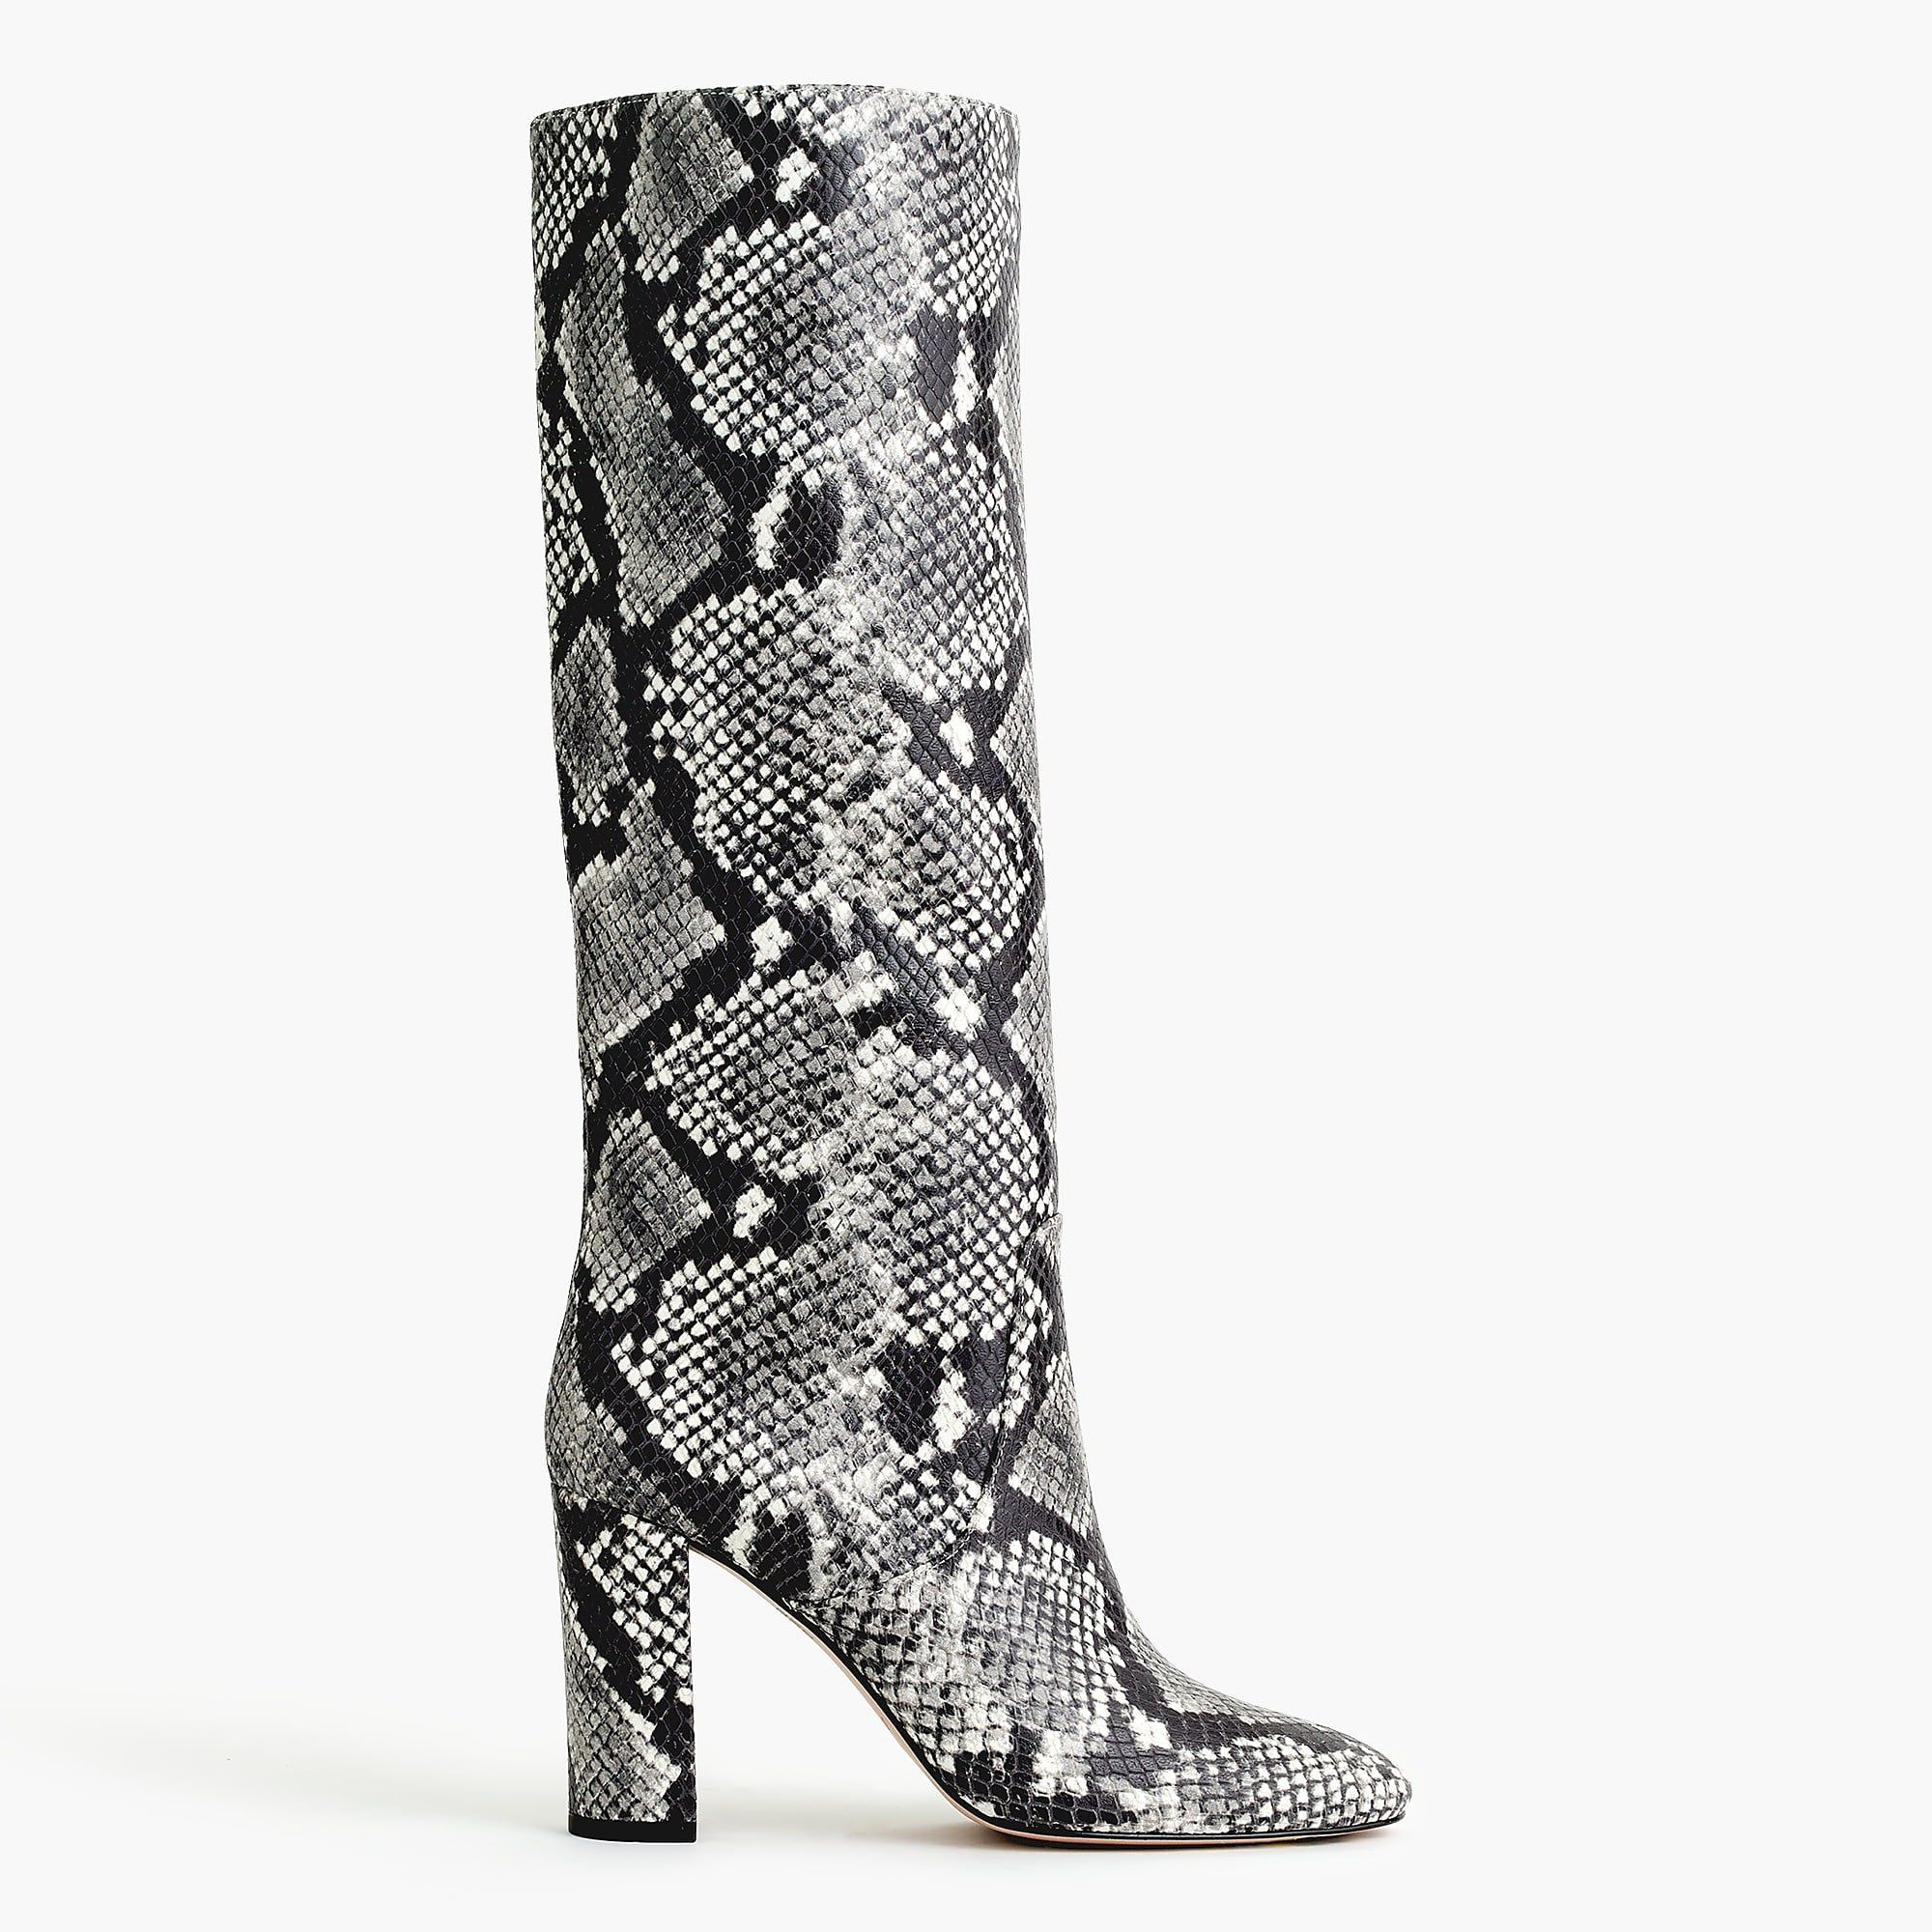 7c8d10ca058 Tall high-heel boots in faux snakeskin